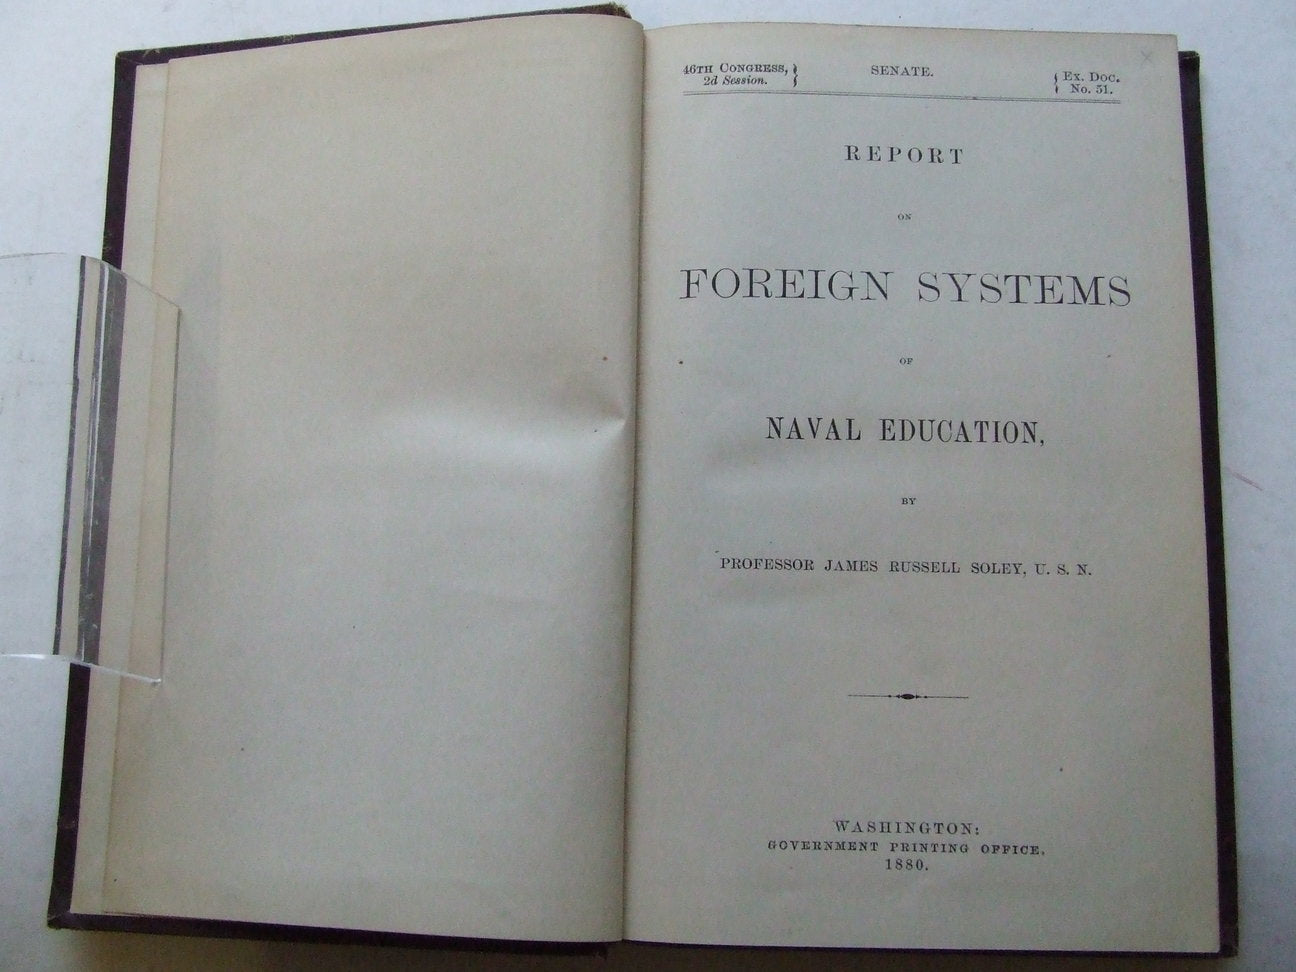 Report on Foreign Systems of Naval Education